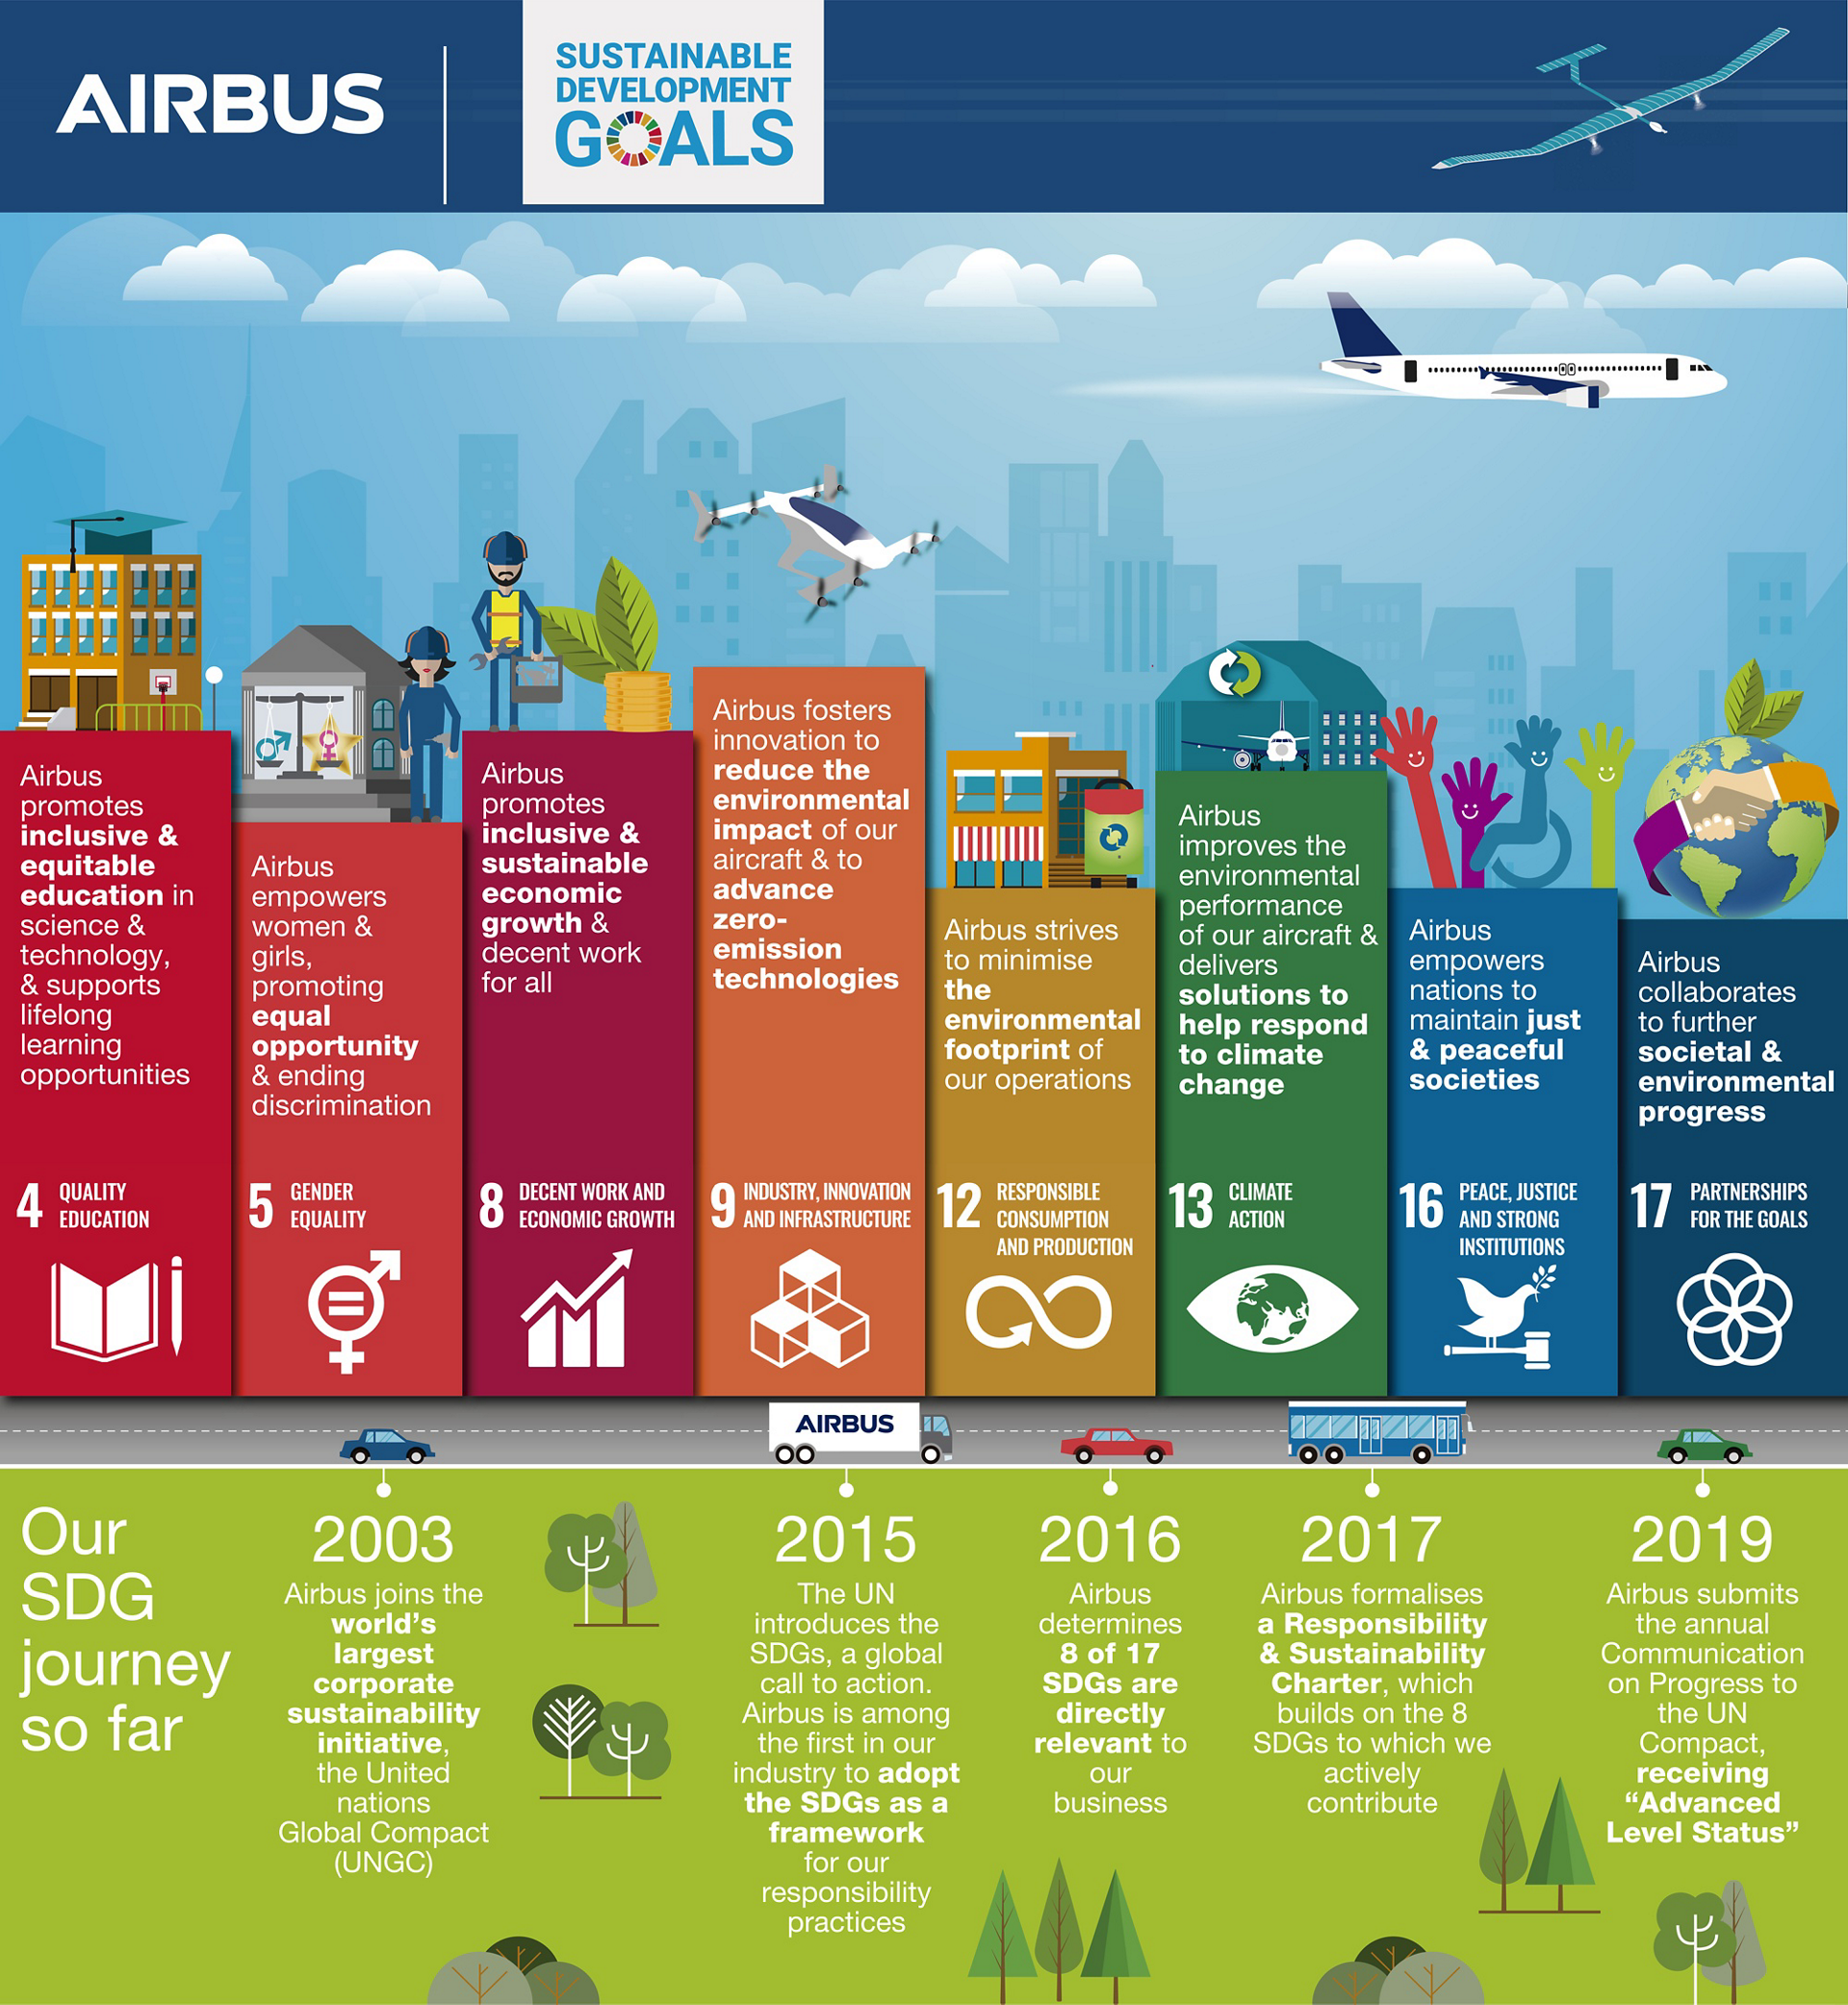 Airbus' commitment to the UN Sustainable Development Goals